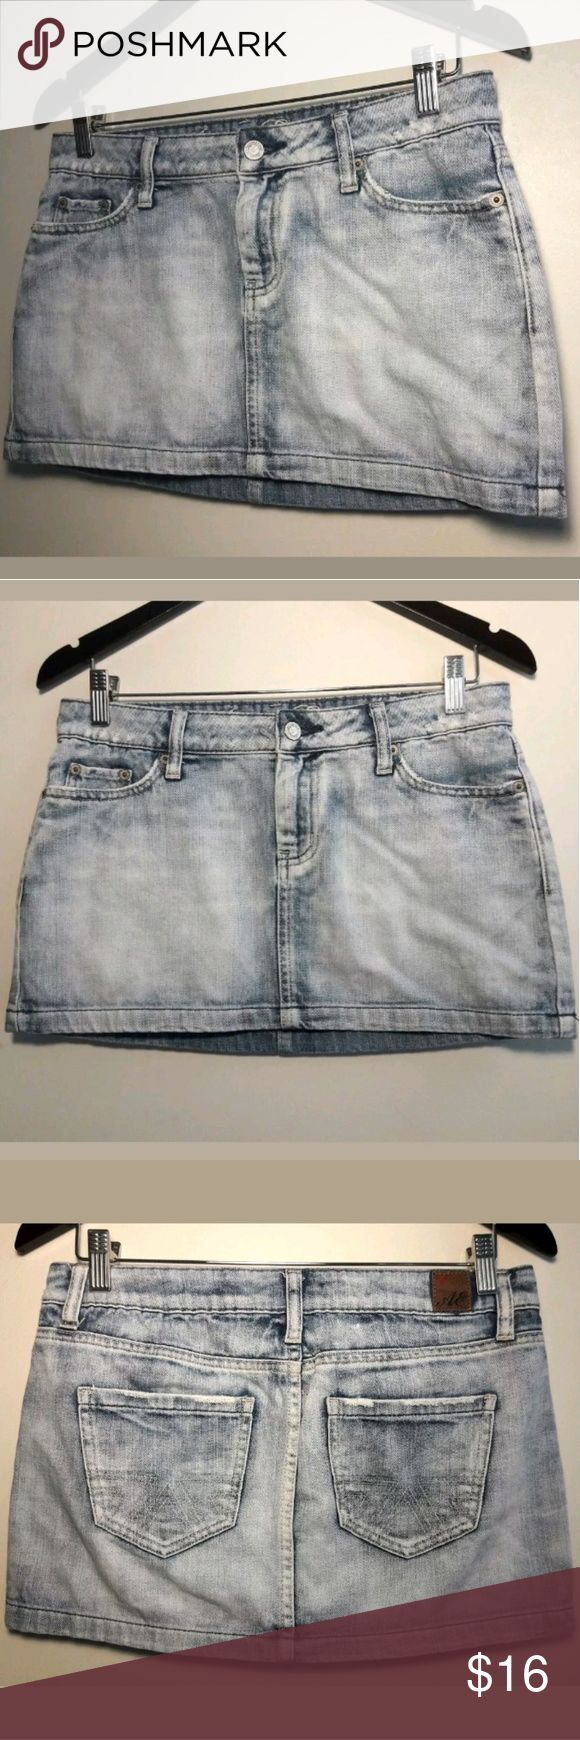 American Eagle Jean/Denim Mini Skirt Size 4 AMERICAN EAGLE OUTFITTERS   Laides Stonewash Distressed Denim Blue Jean Mini Skirt. Super Cute, A Must Have!  Women's Size 4  Pre-owned in Excellent condition. Minor unnoticeable flaw at the Hem Line.  Please be sure to view all images before purchasing   Thank you for Looking & Sharing Happy Poshing😄 American Eagle Outfitters Skirts Mini